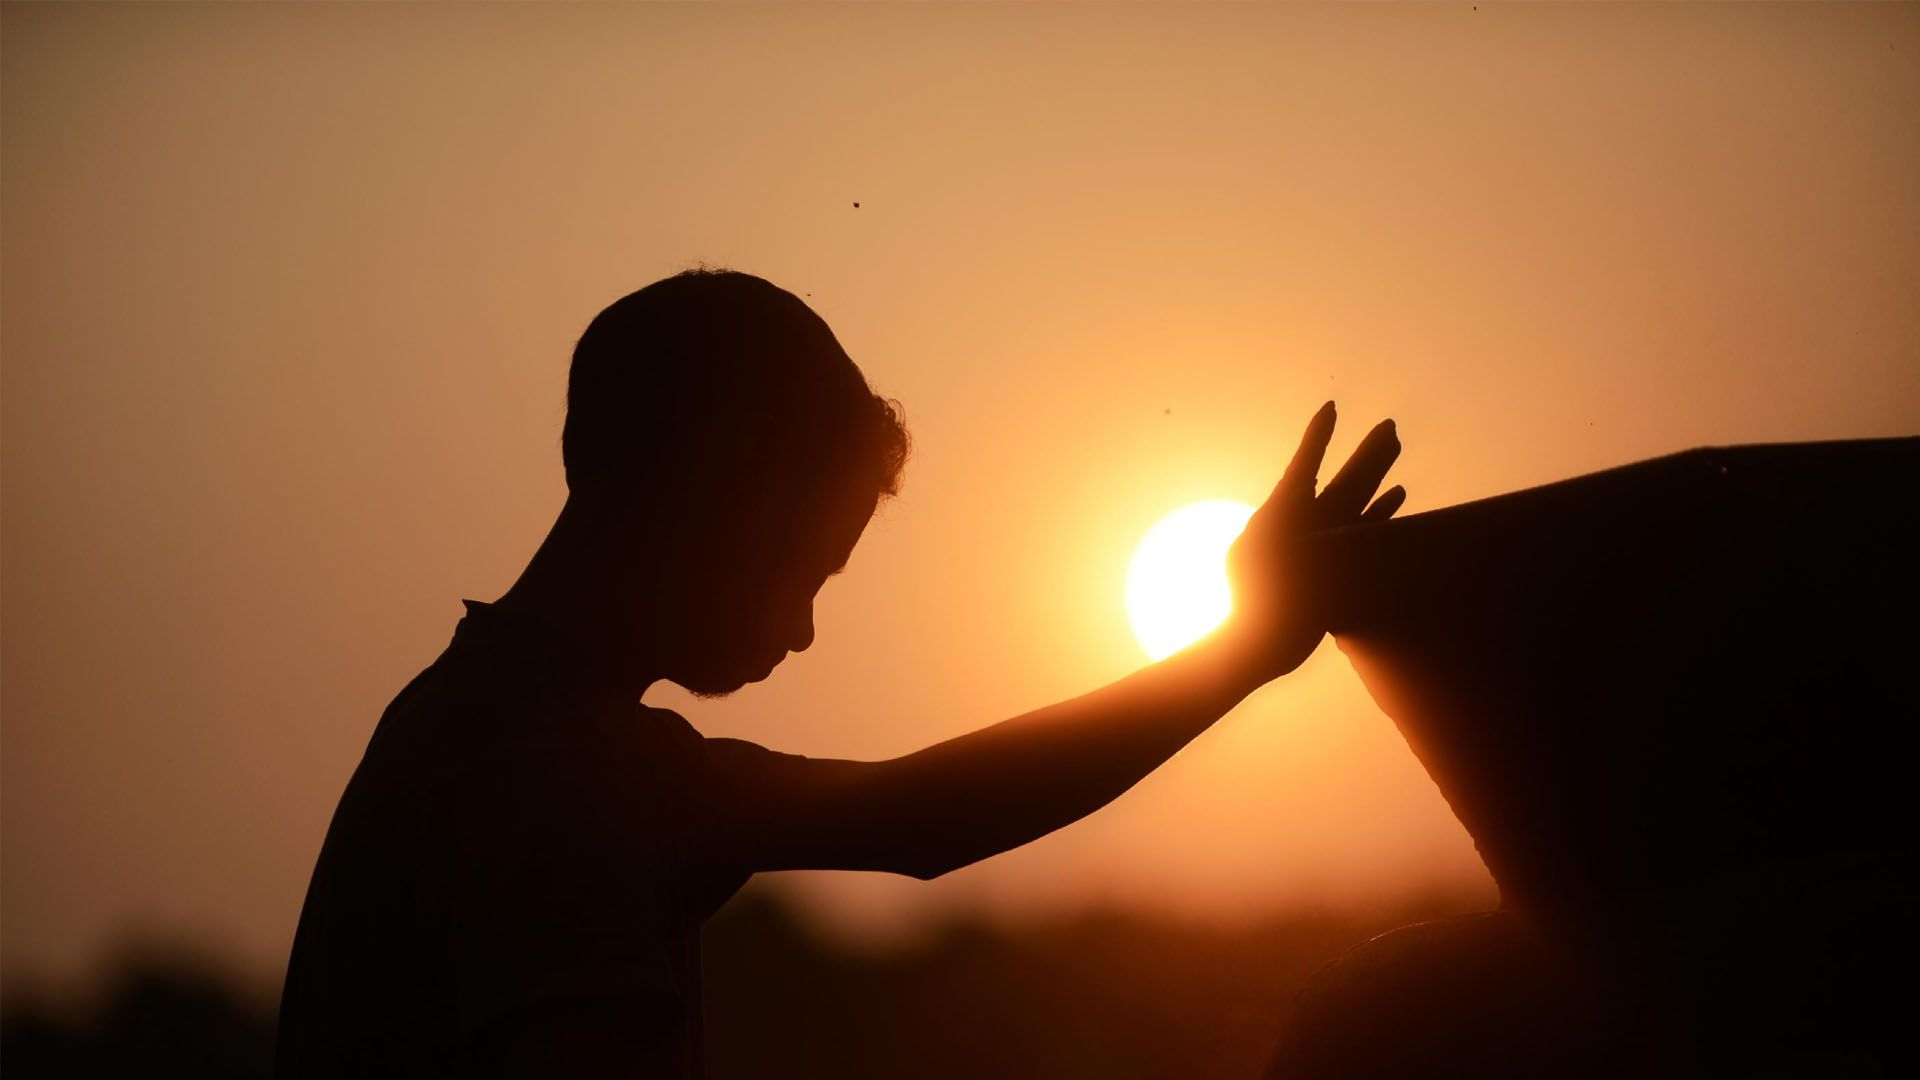 Kids Prayer Sunset HD Wallpaper | Inspiring | Pinterest ...